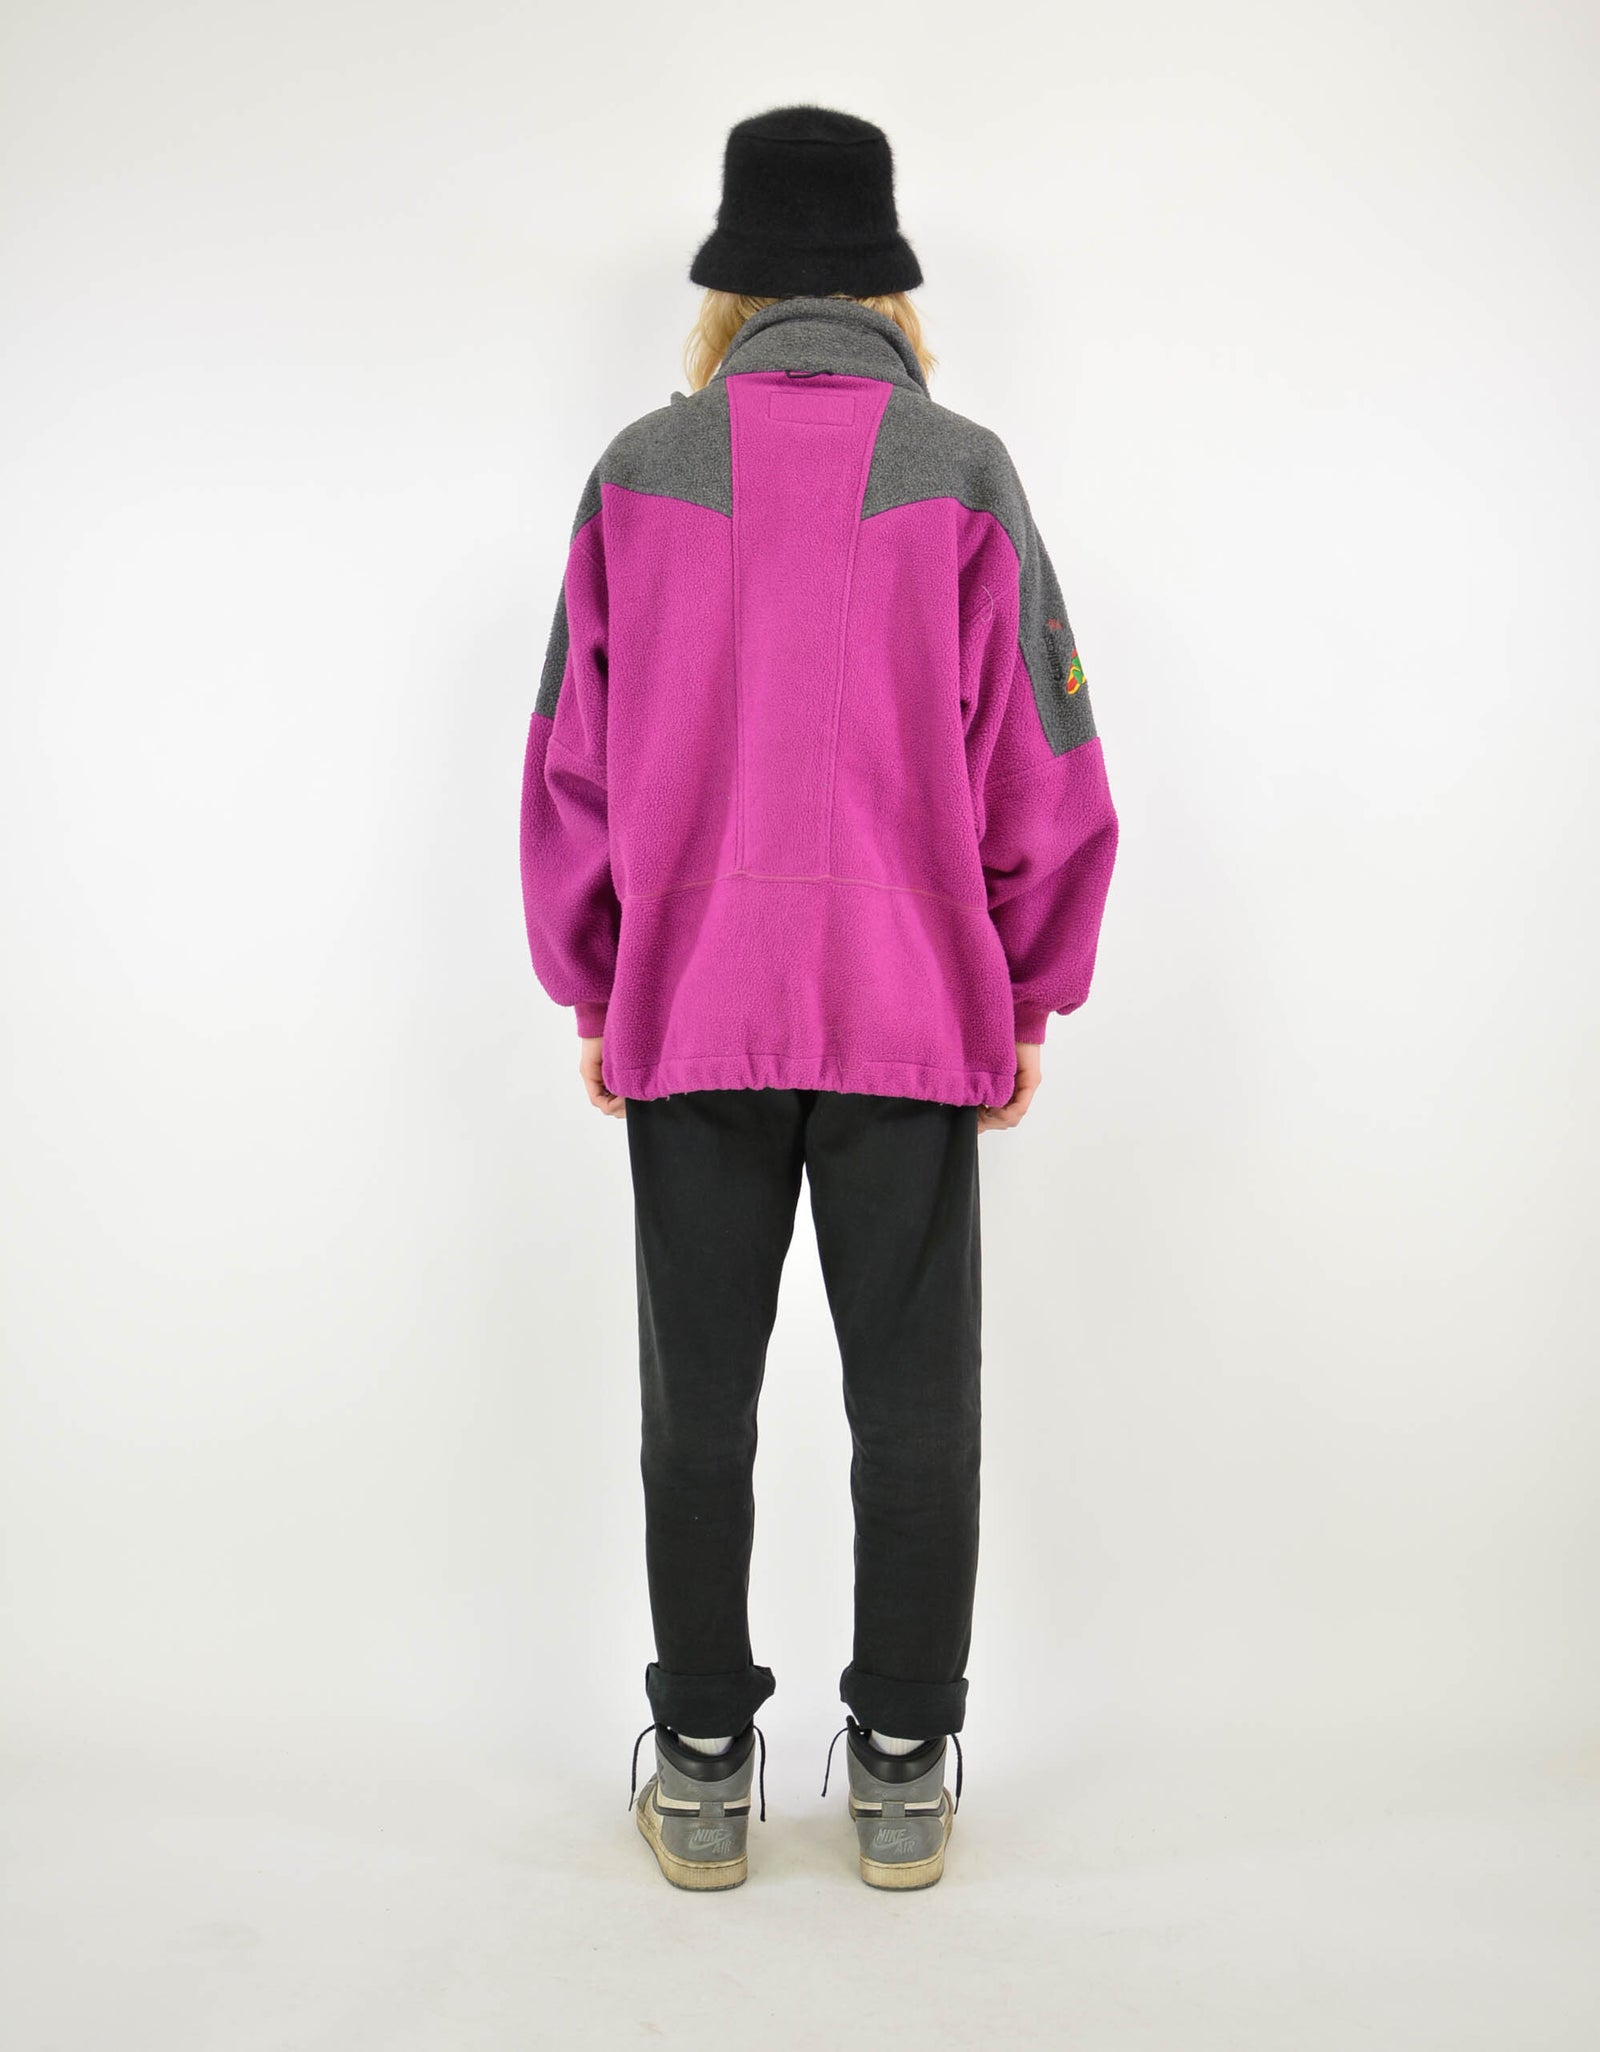 Fleece jacket - PICKNWEIGHT - VINTAGE KILO STORE